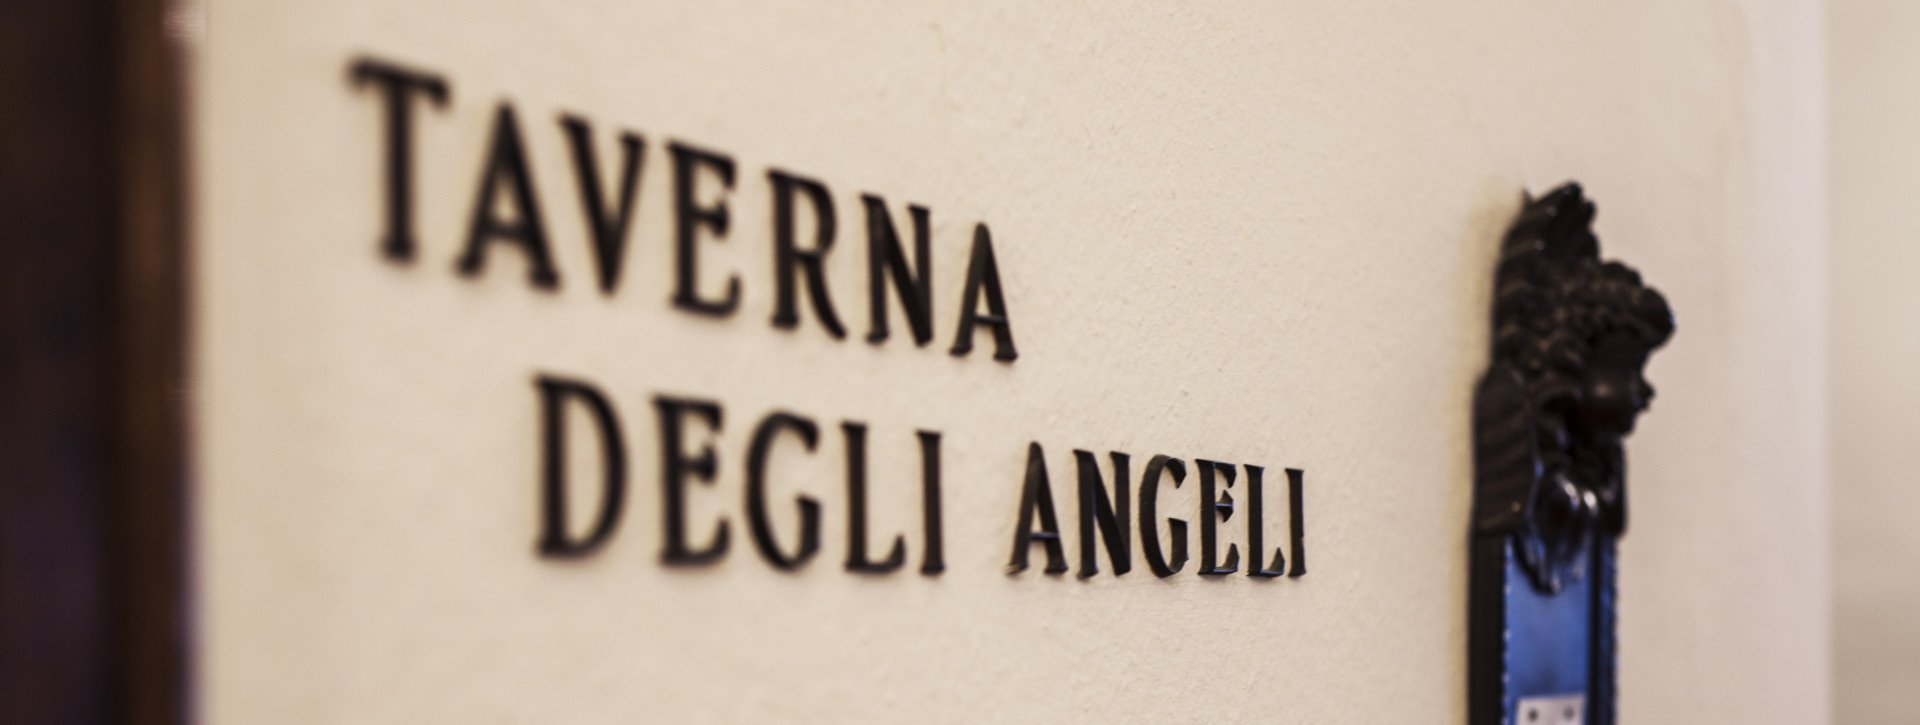 Big nameplate of Taverna degli Angeli